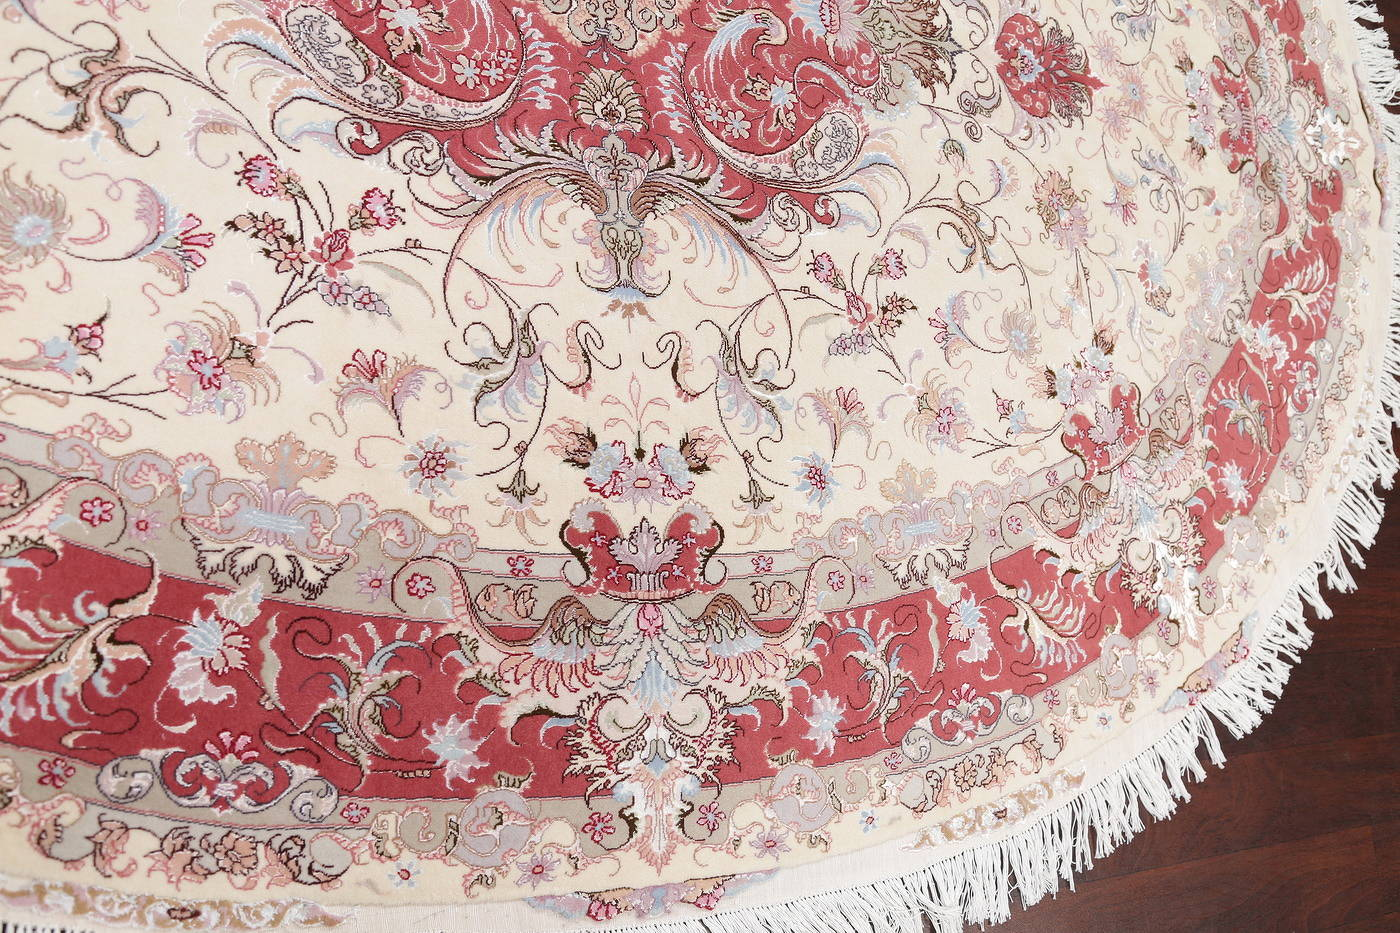 Ivory Floral Tabriz Persian Oval Area Rug 7x10 image 13